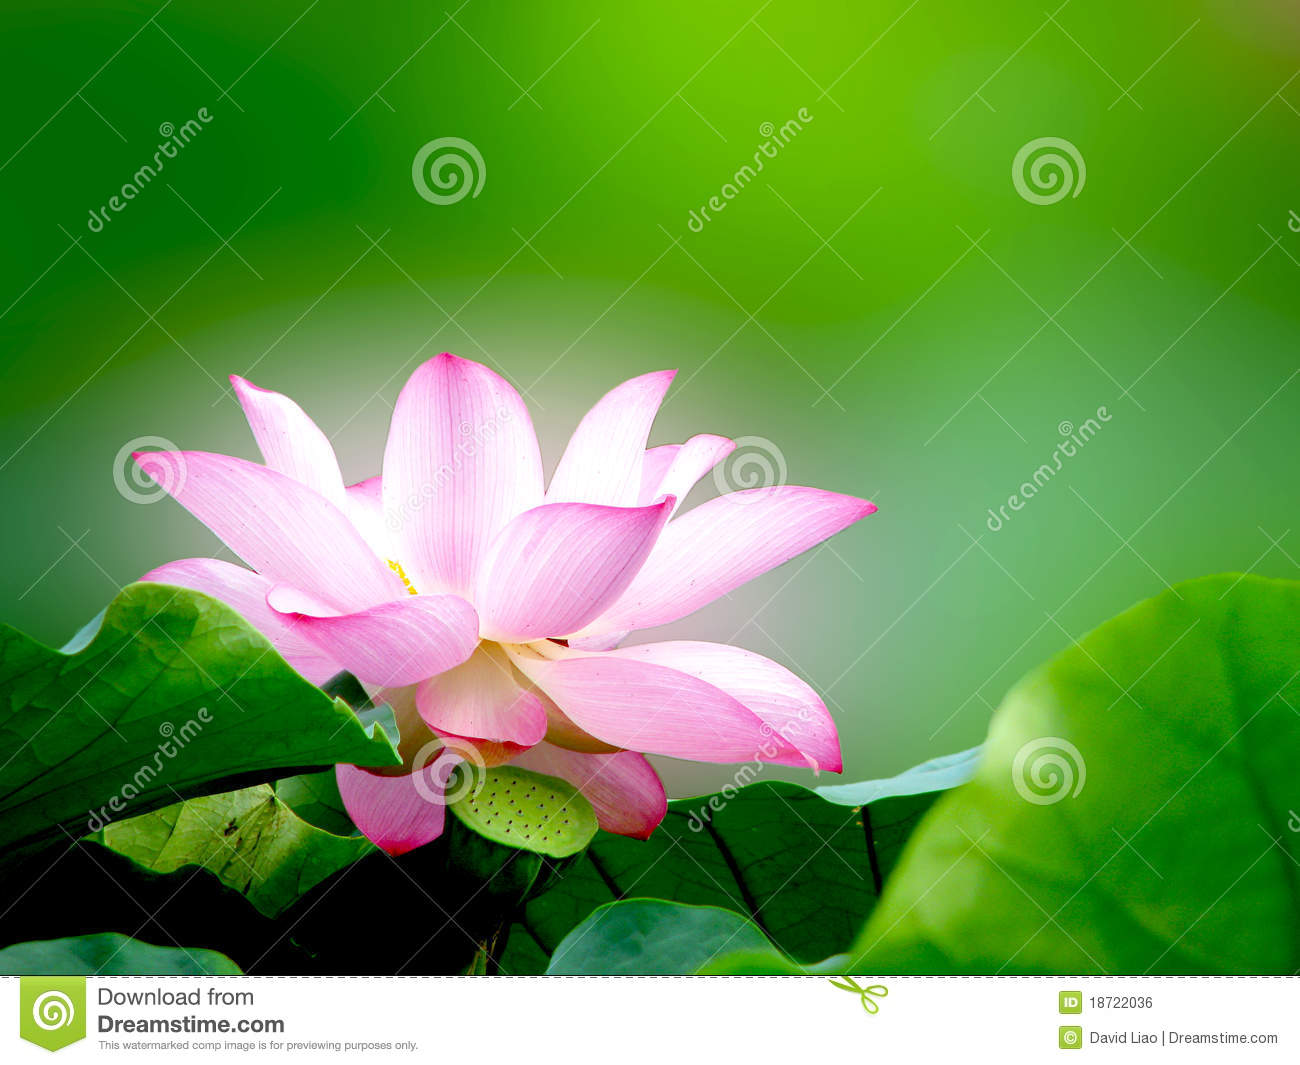 white lotus royalty free stock image  image, Beautiful flower